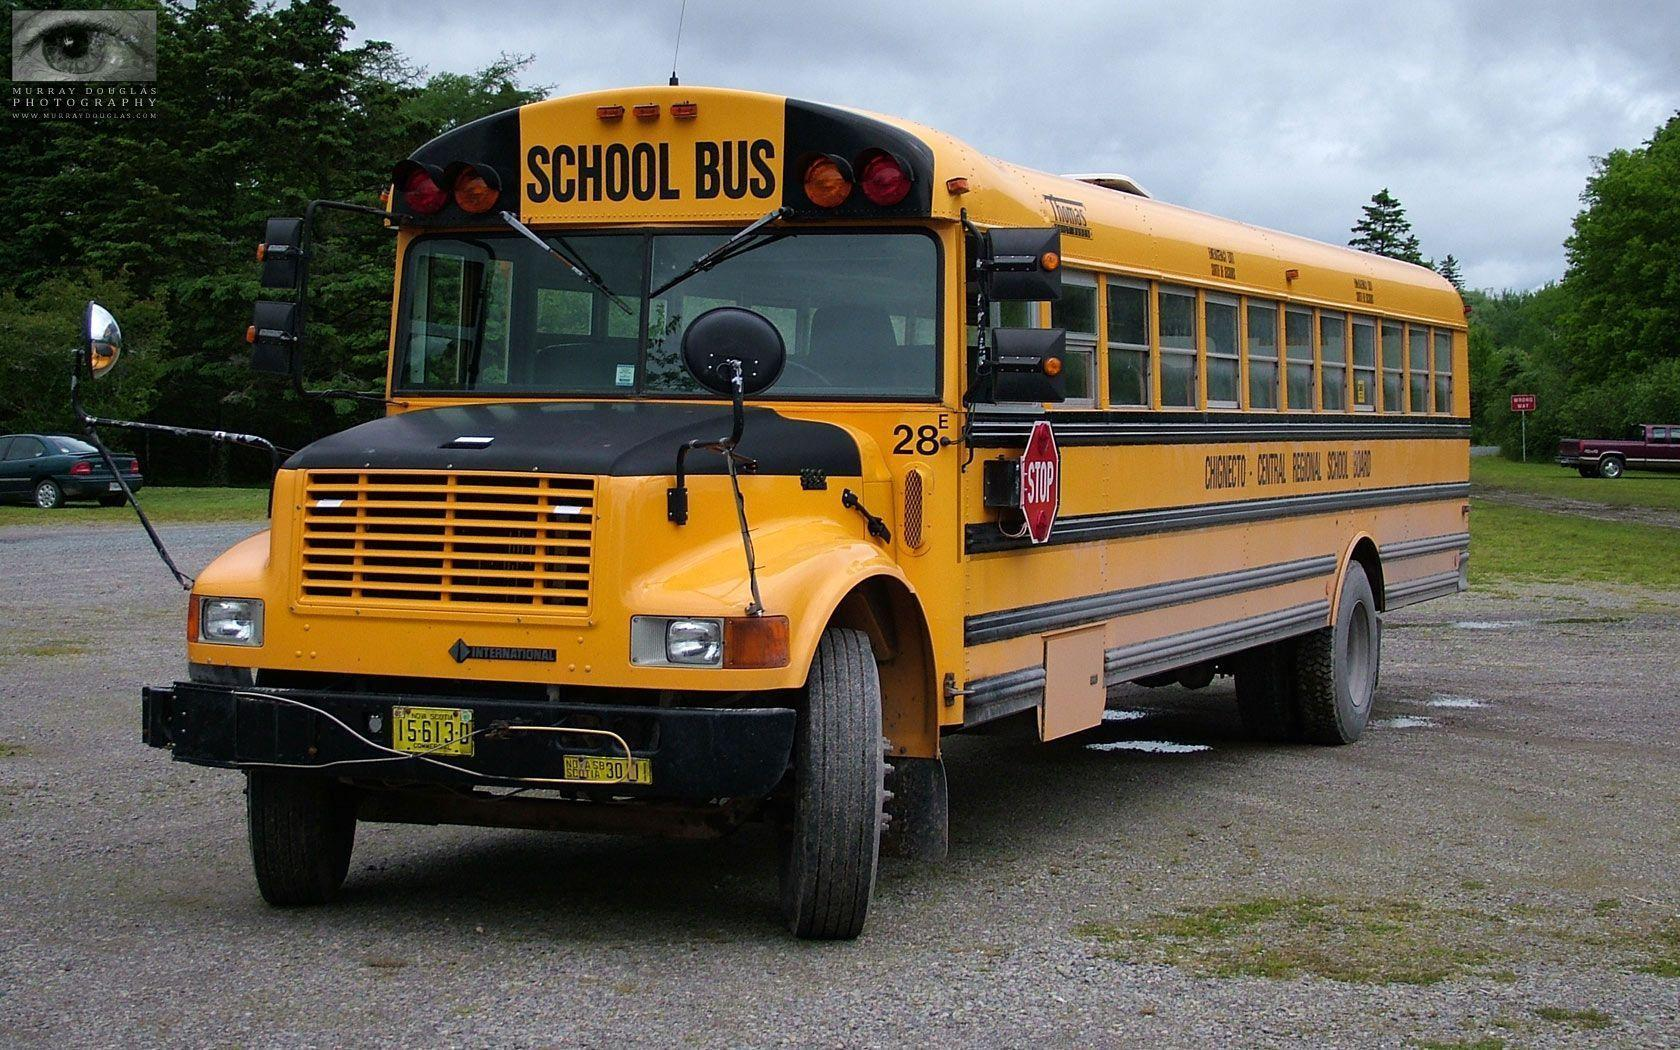 School Bus Wallpapers Image & Pictures